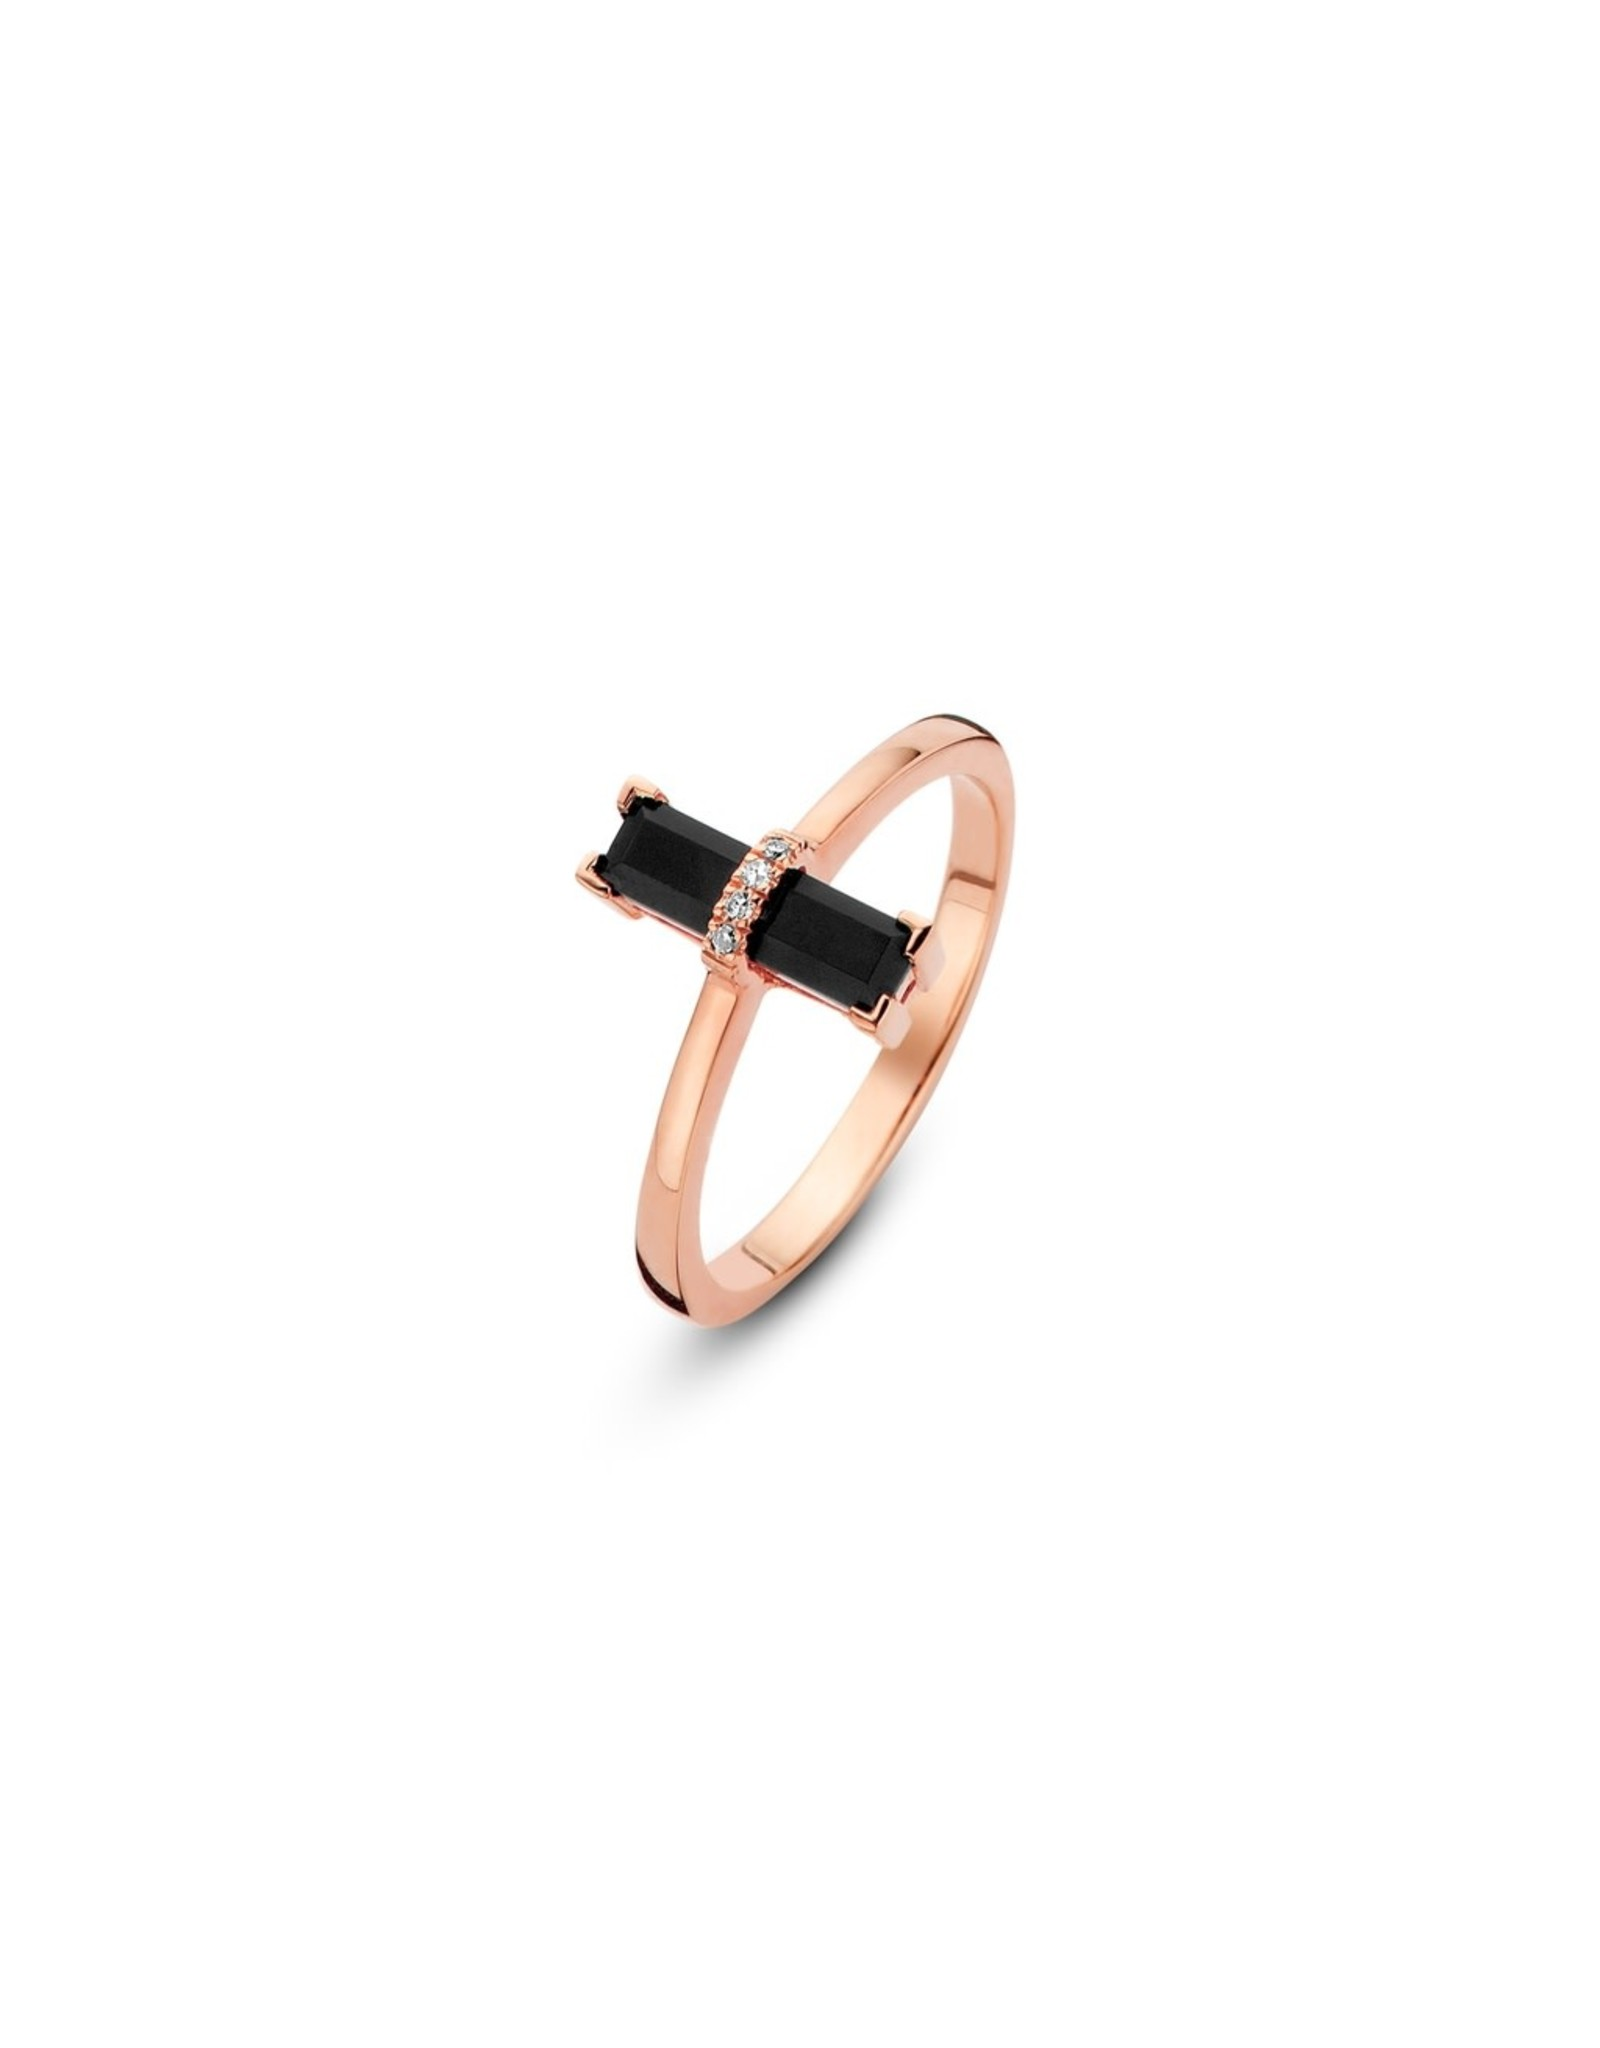 Diamanti Per Tutti Dark Secret Ring zwarte onyx- zilver goudkleurig maat 54